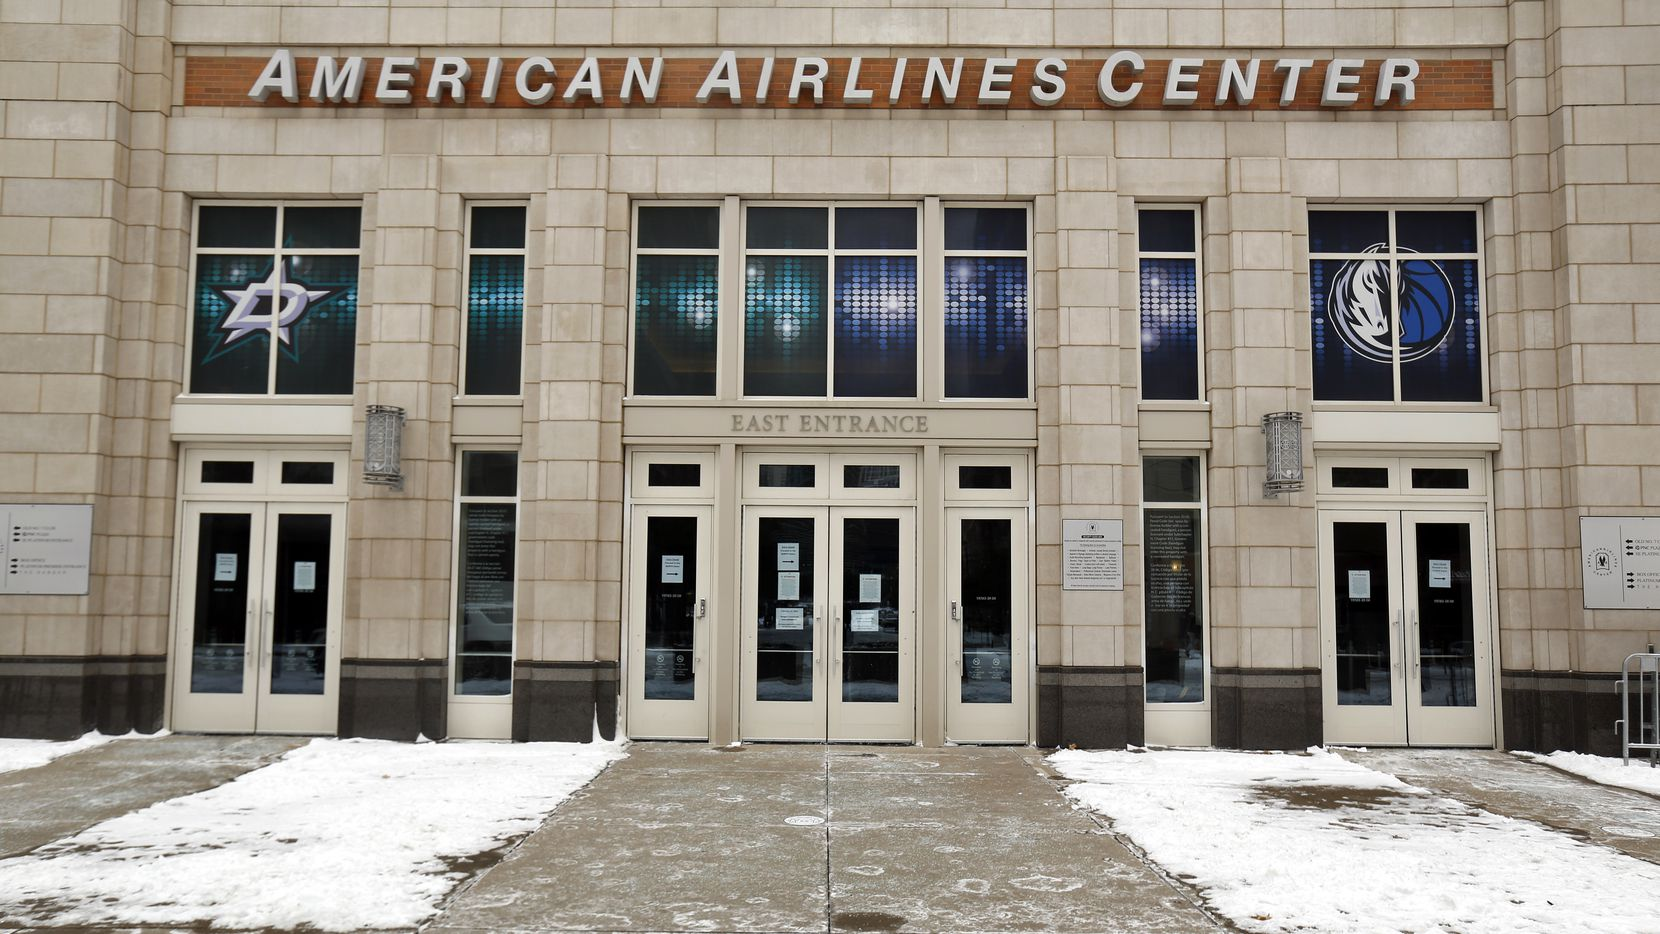 Because of the widespread loss of electricity from the snow storm, the Dallas Stars and Dallas Mavericks have canceled games at the now closed American Airlines Center in Dallas to preserve energy, Tuesday, February 16, 2021.